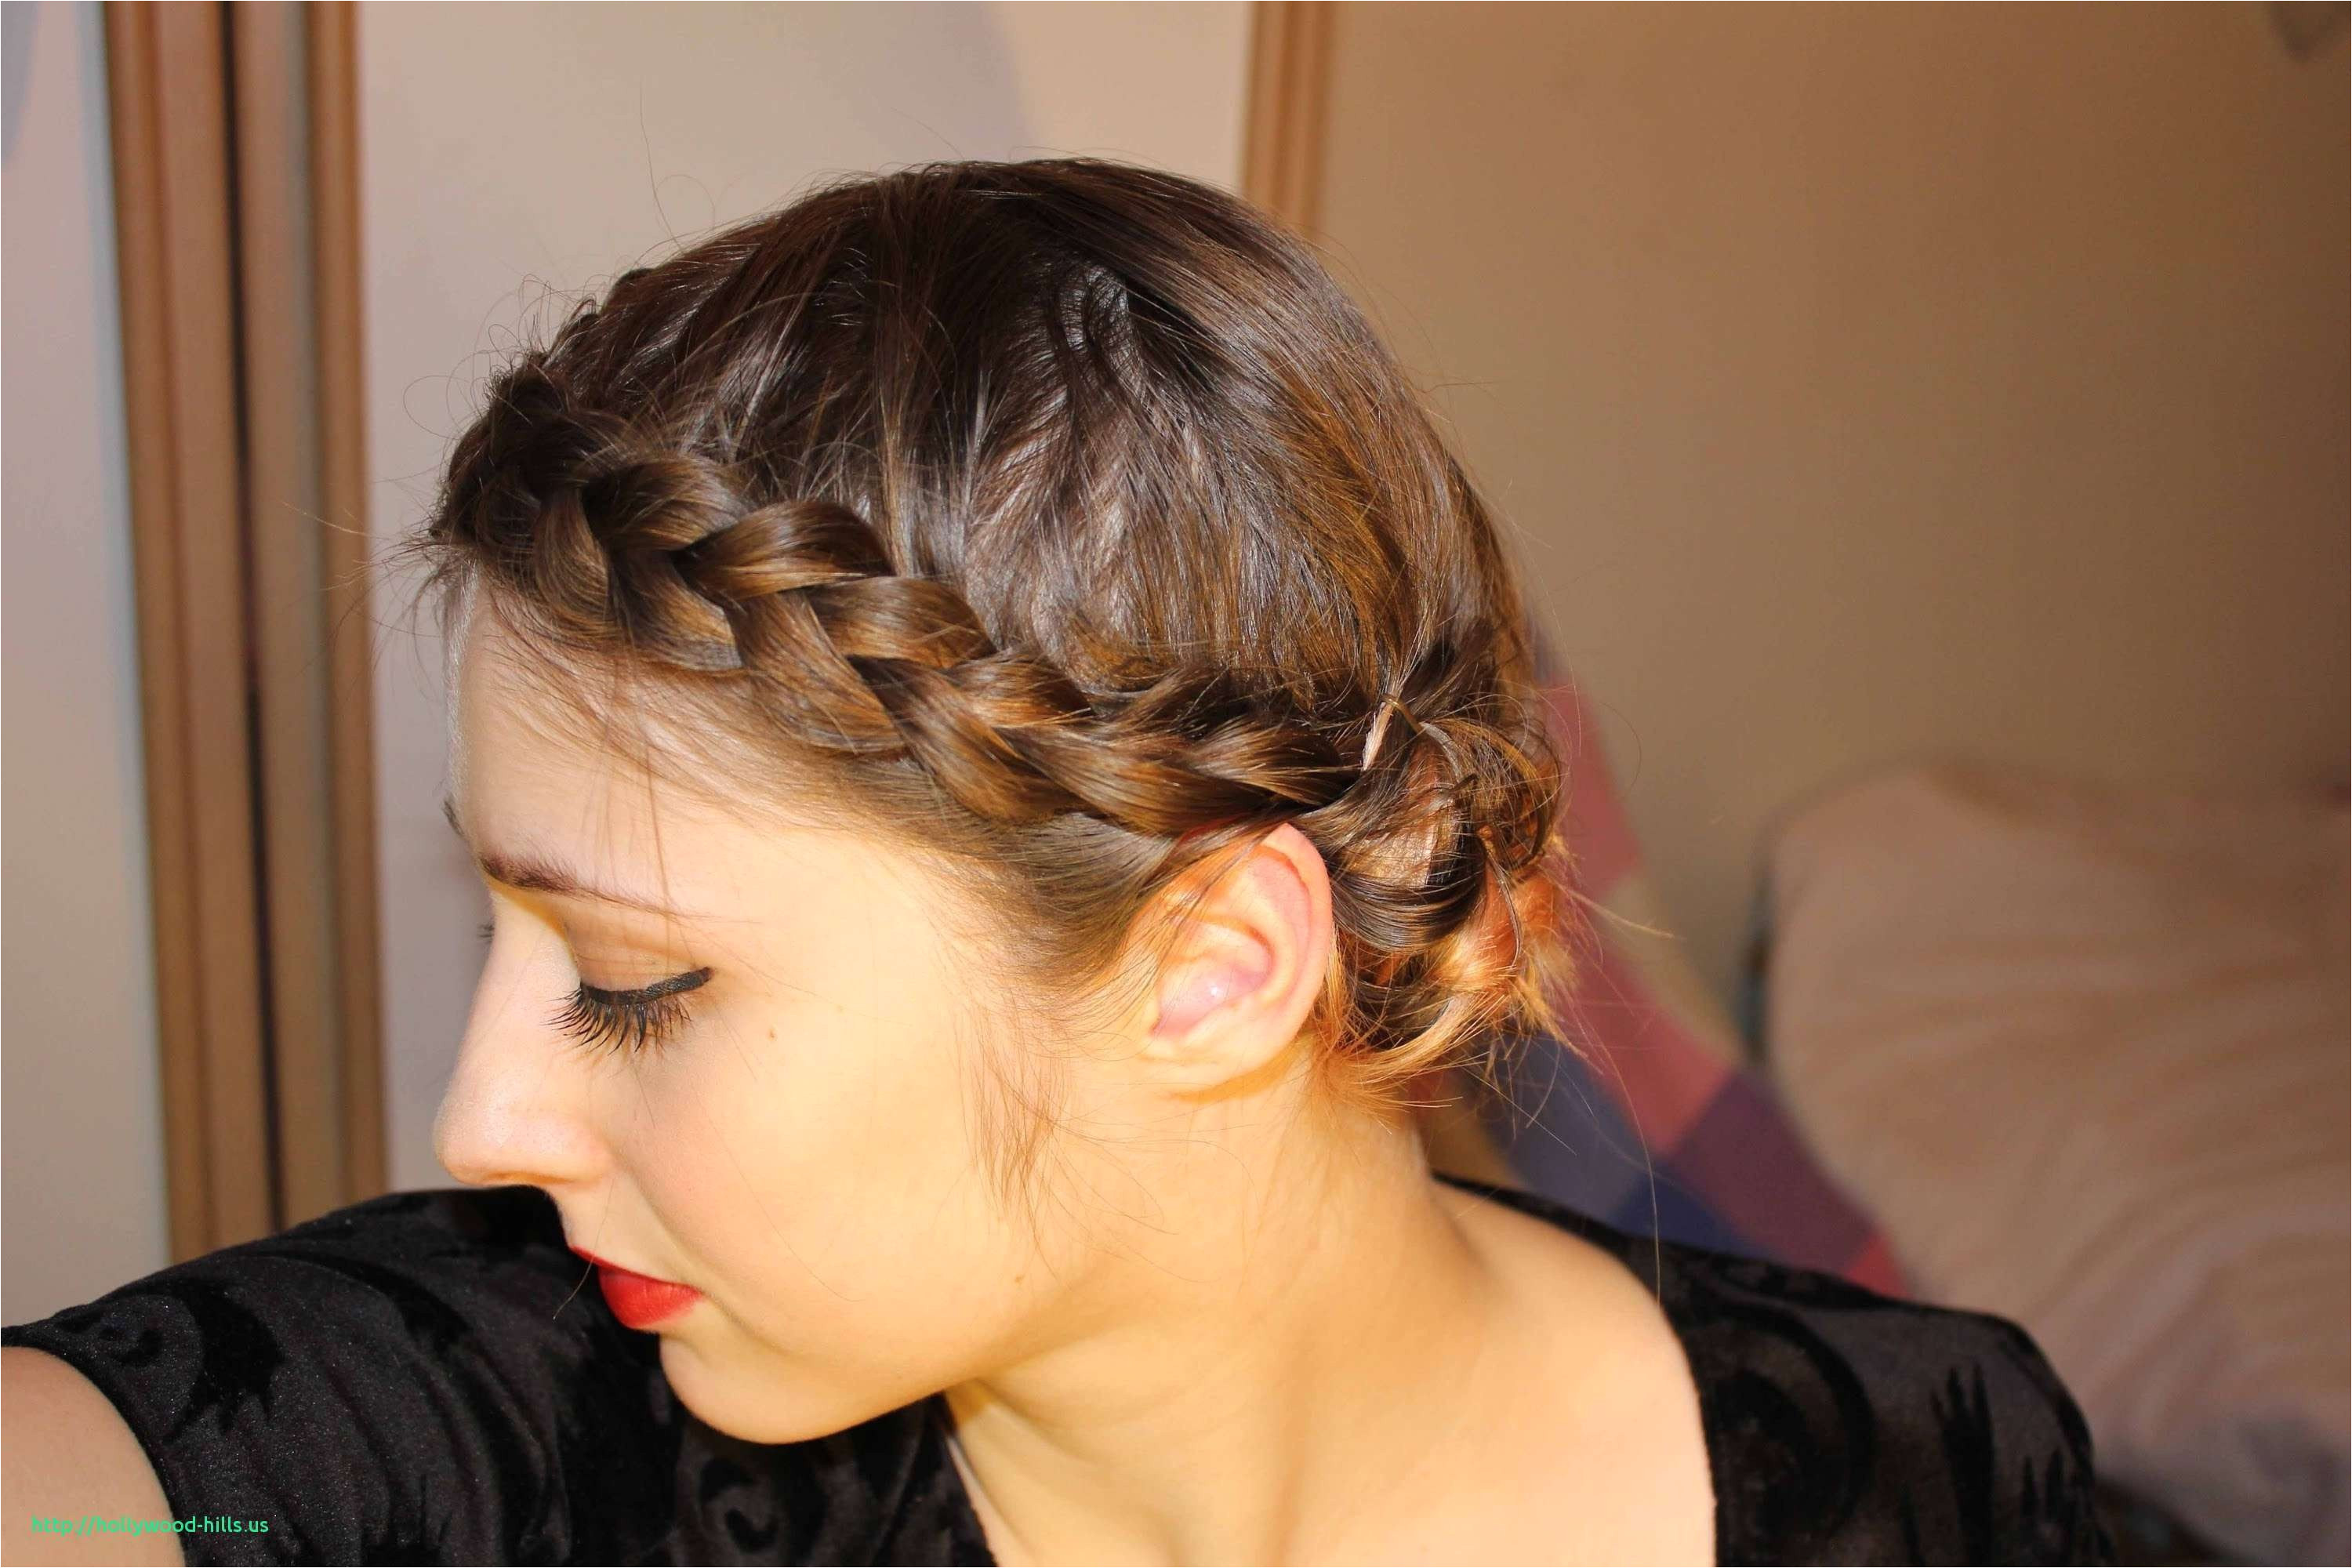 Simple Hairstyles for Girls with Medium Length Hair Inspirational Fresh Simple Everyday Hairstyles for Medium Hair